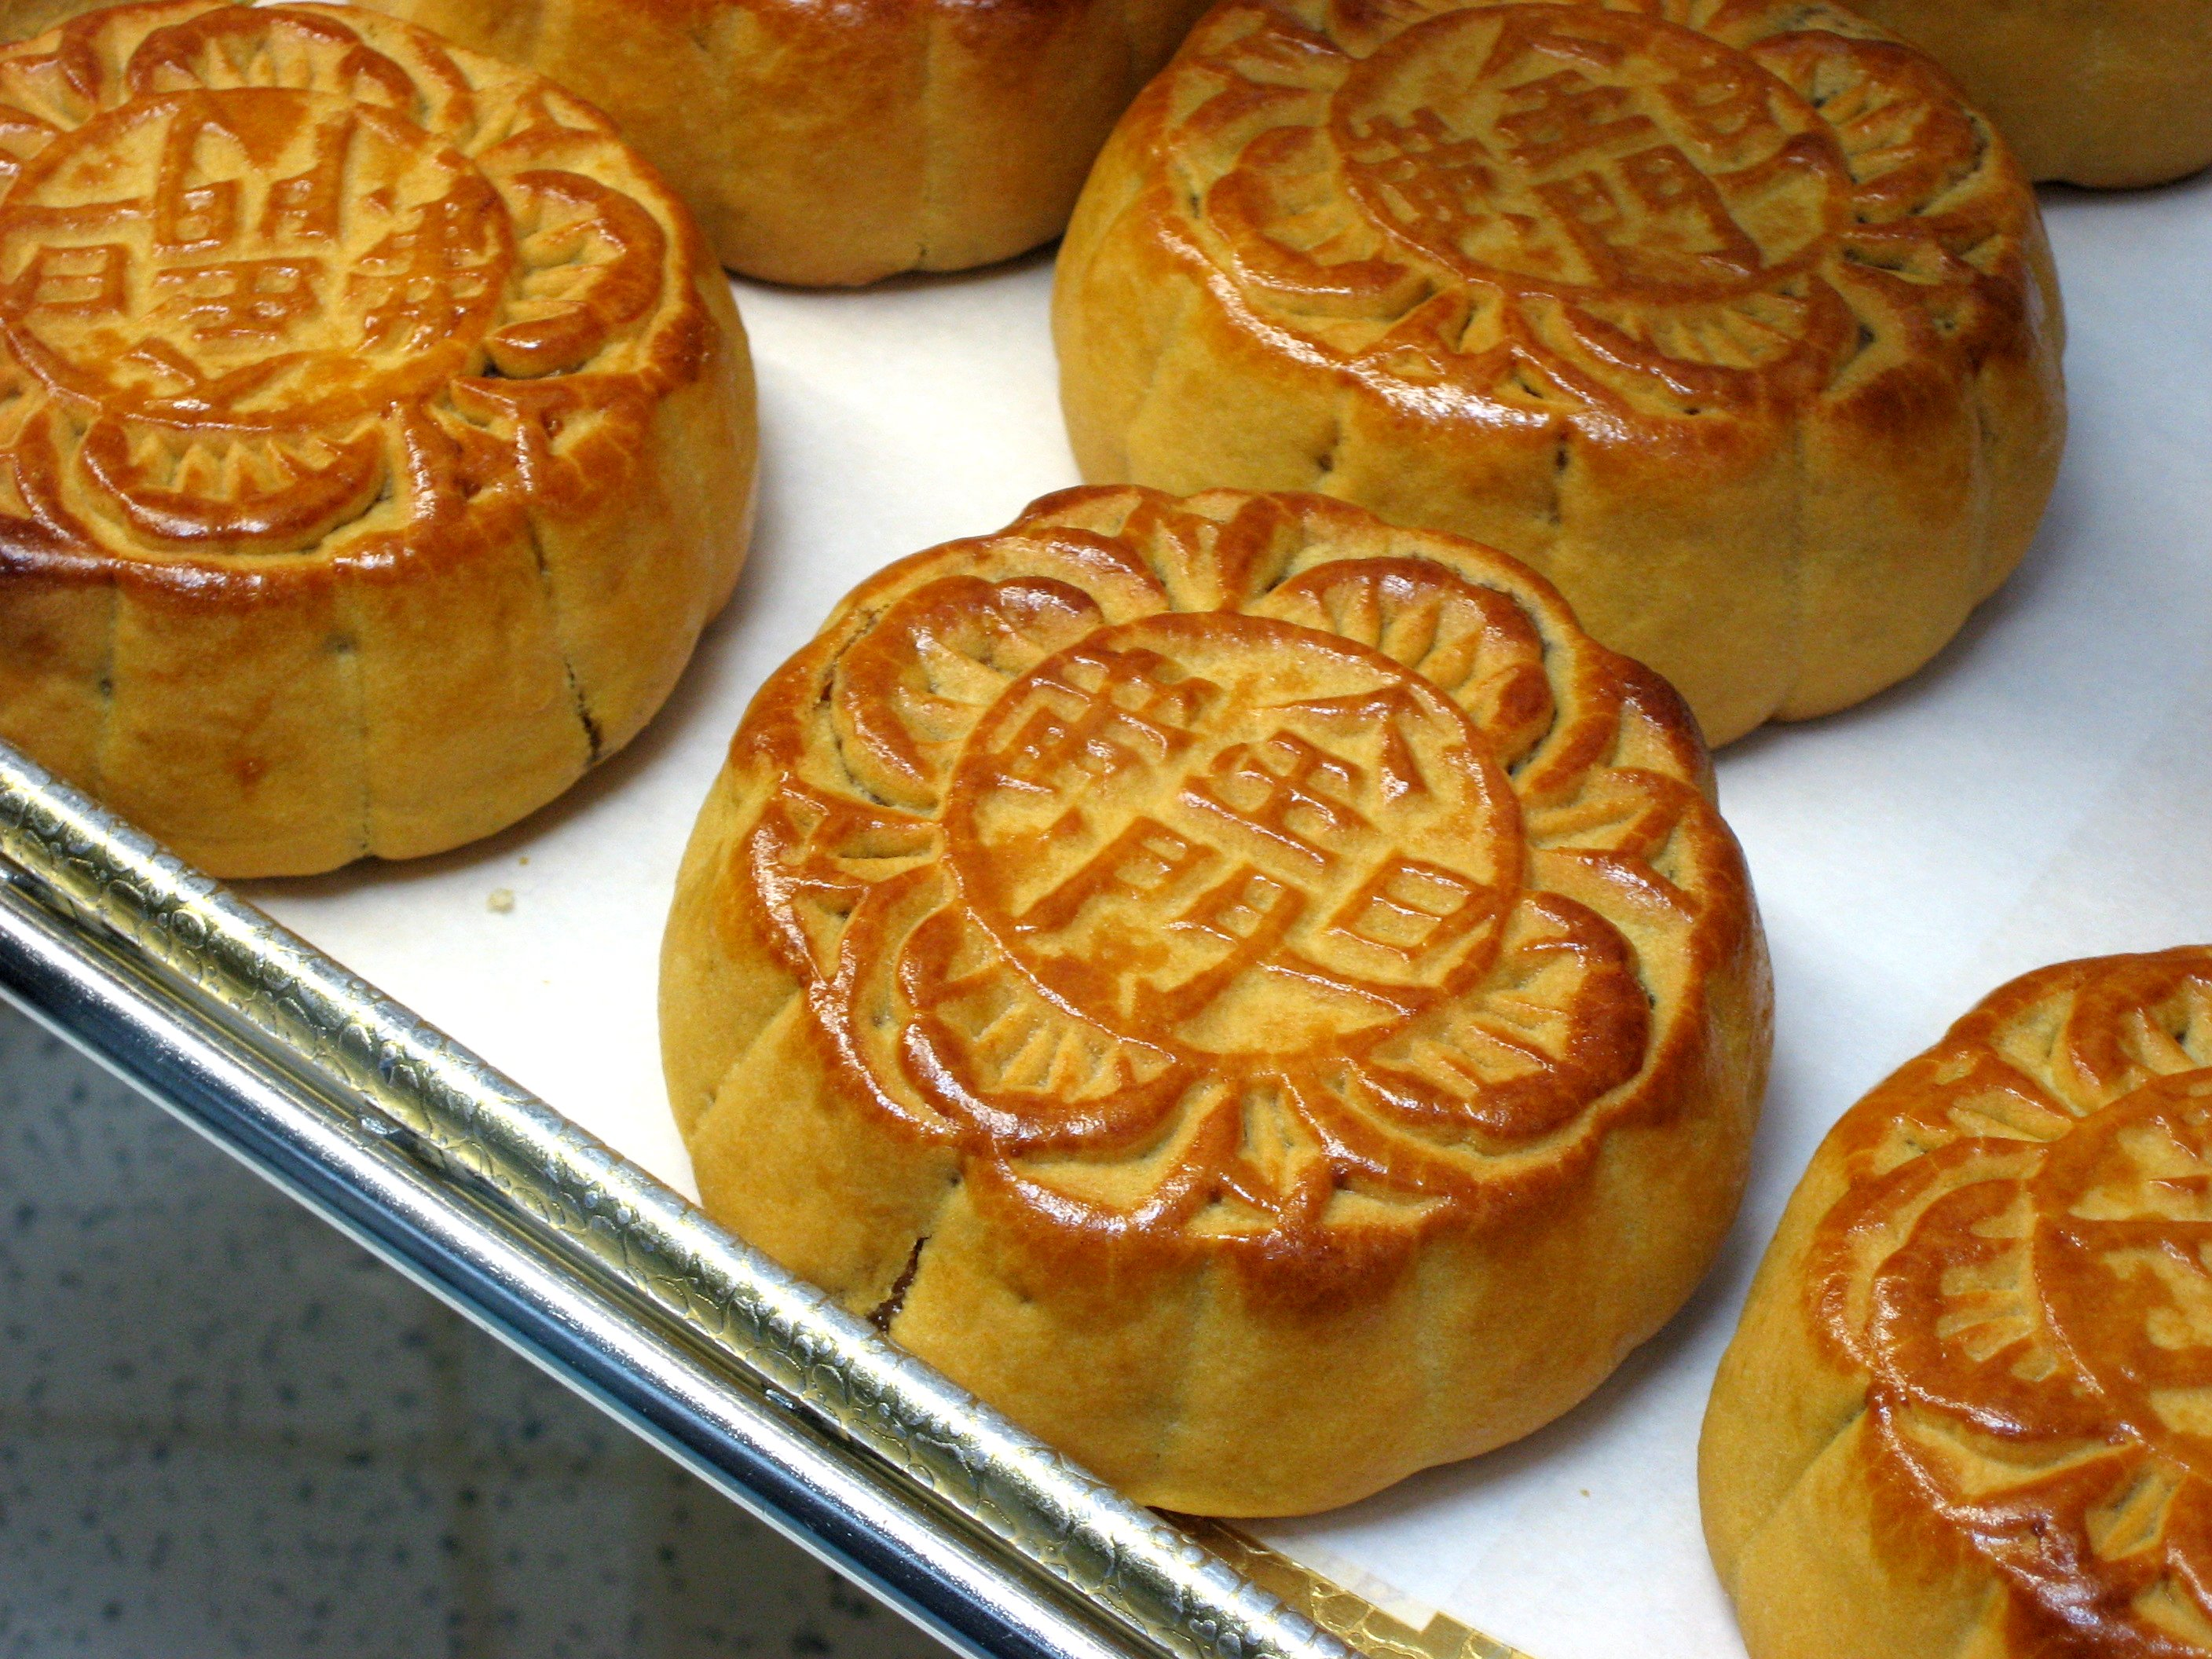 Asian Bakery Cake Cut Criipsy